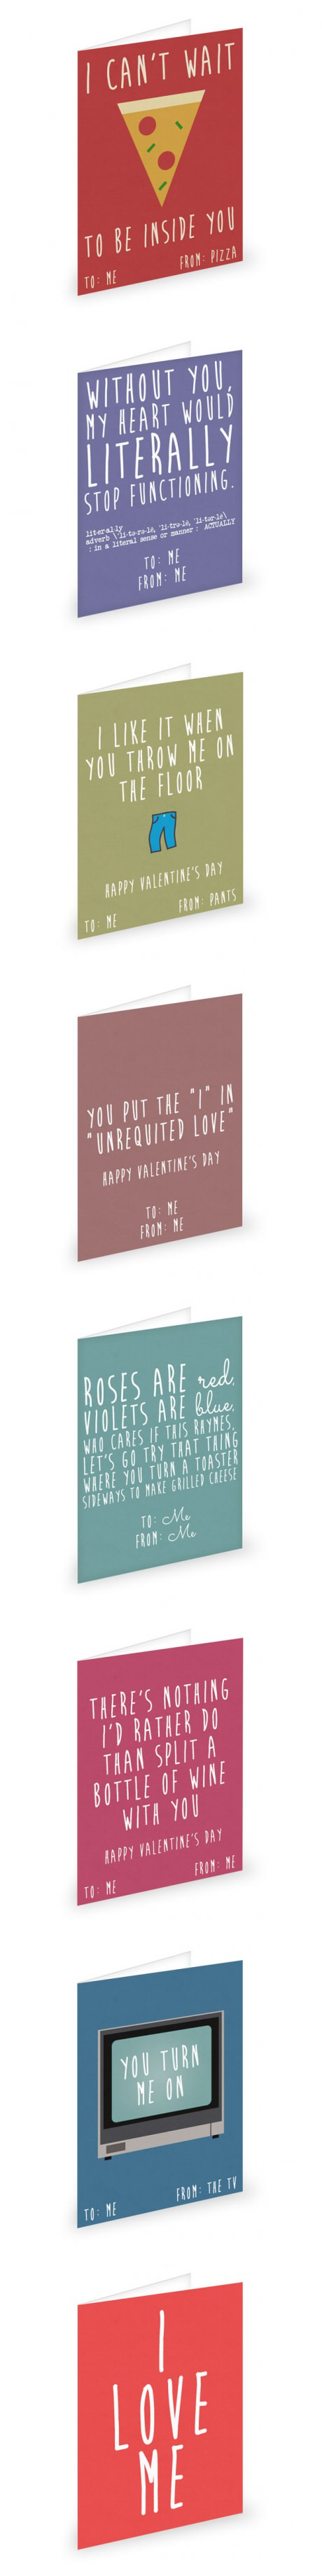 funny-picture-valentines-cards-compilation